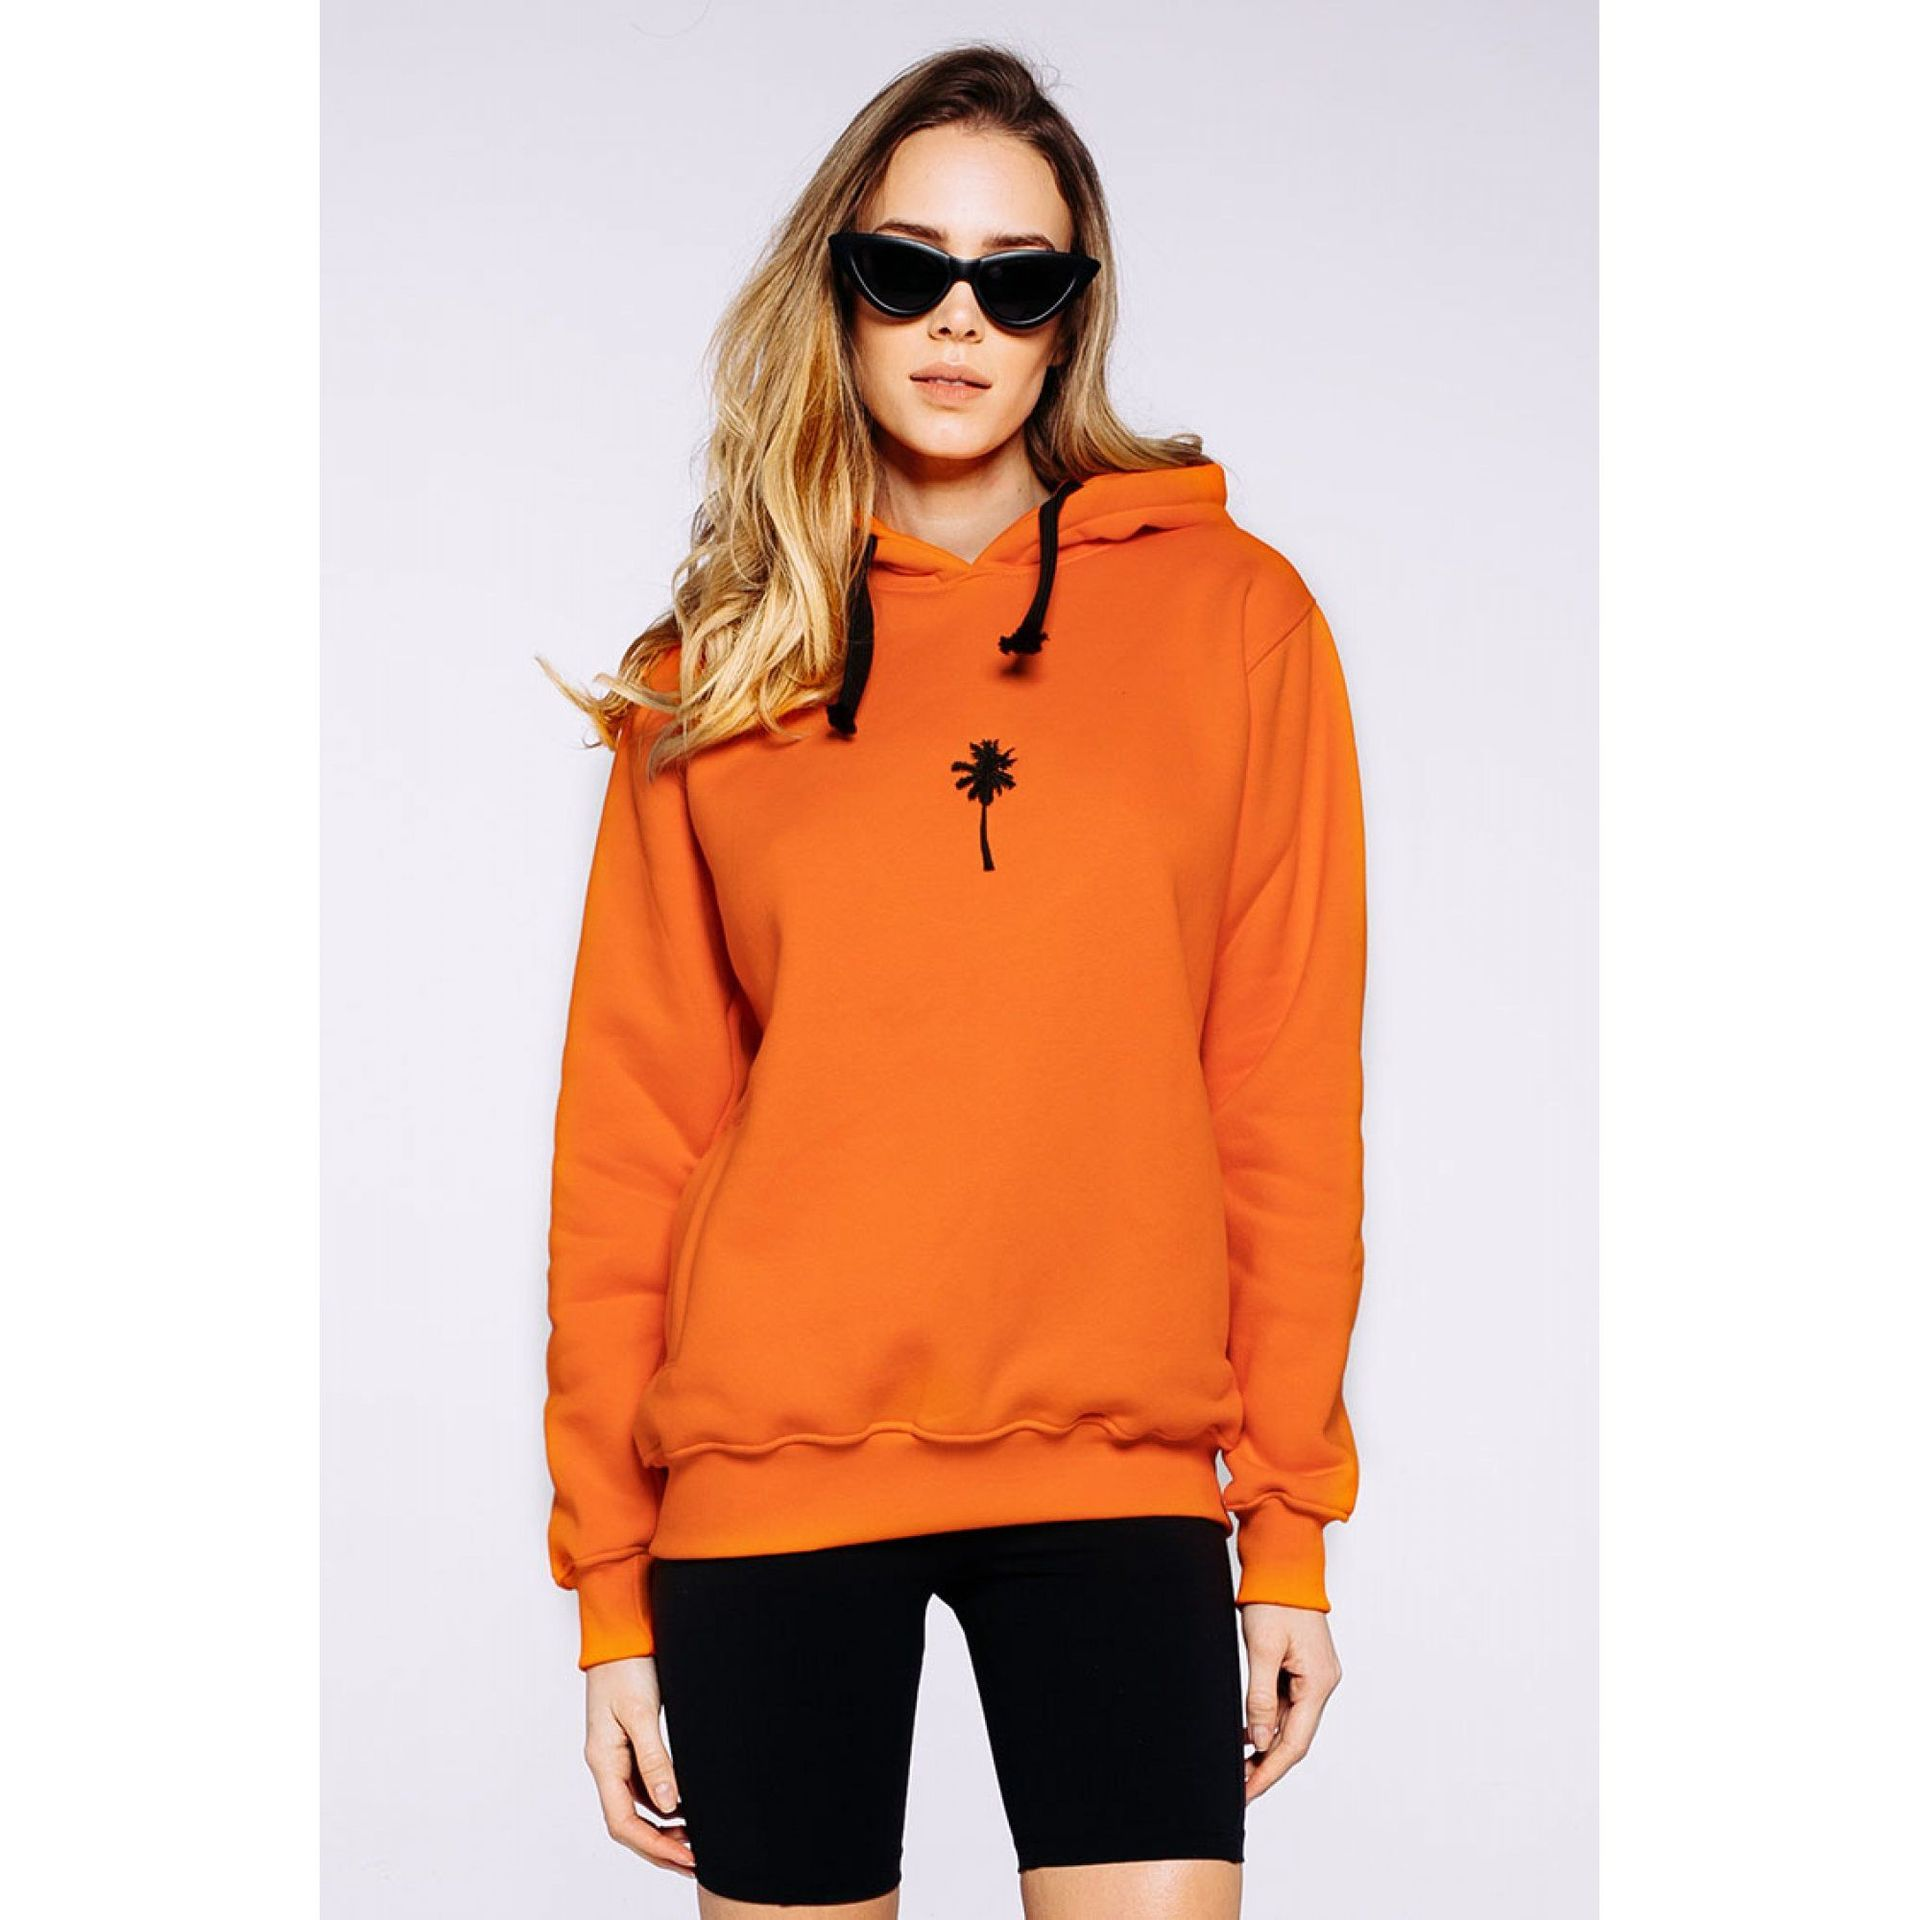 BLUZA JUNGMOB INDEPENDENT ORANGE 1